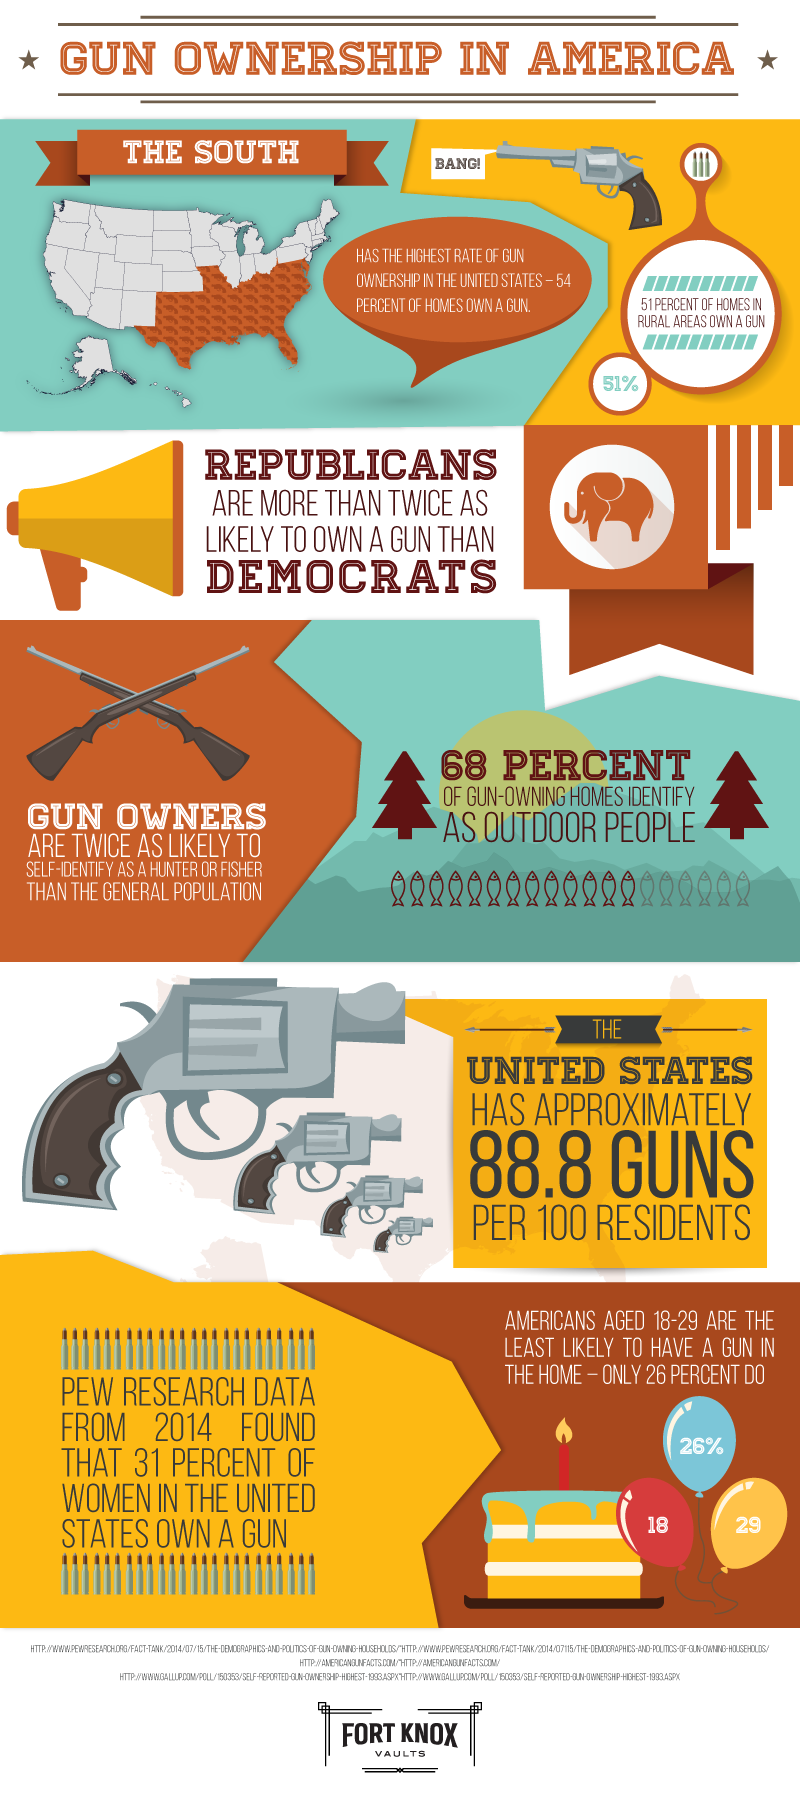 Gun Ownership in the U.S.